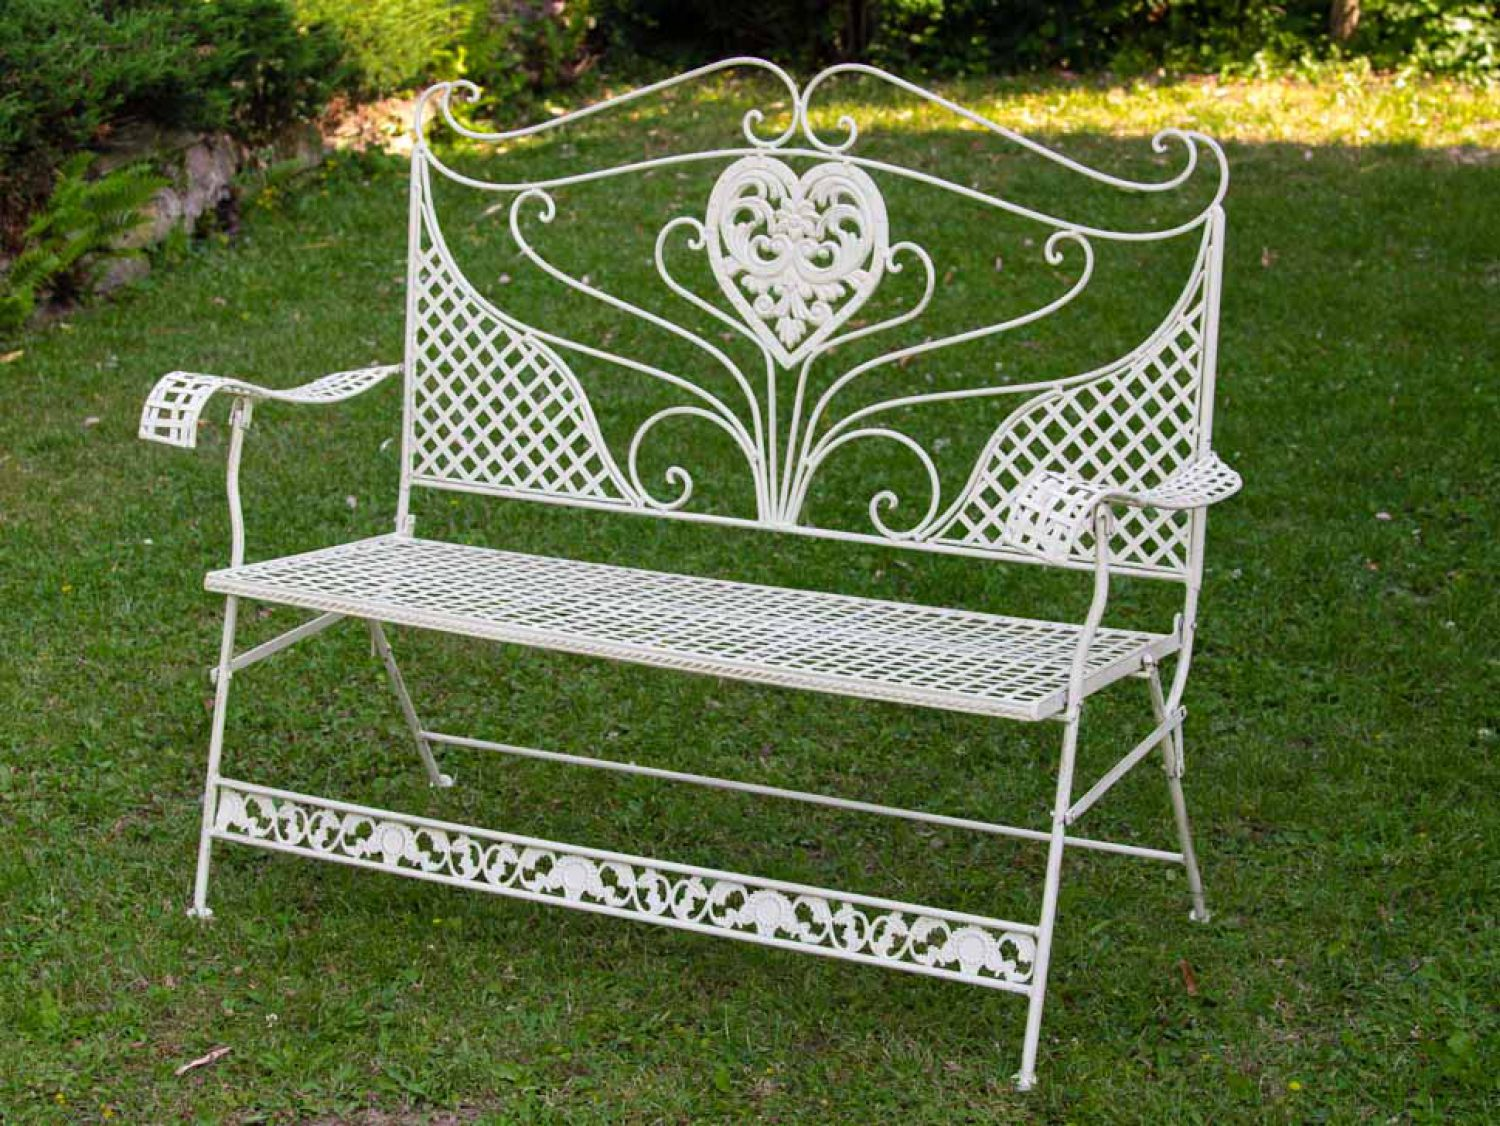 nostalgie gartenbank herz blumen eisen antik stil creme weiss gartenm bel bank ebay. Black Bedroom Furniture Sets. Home Design Ideas